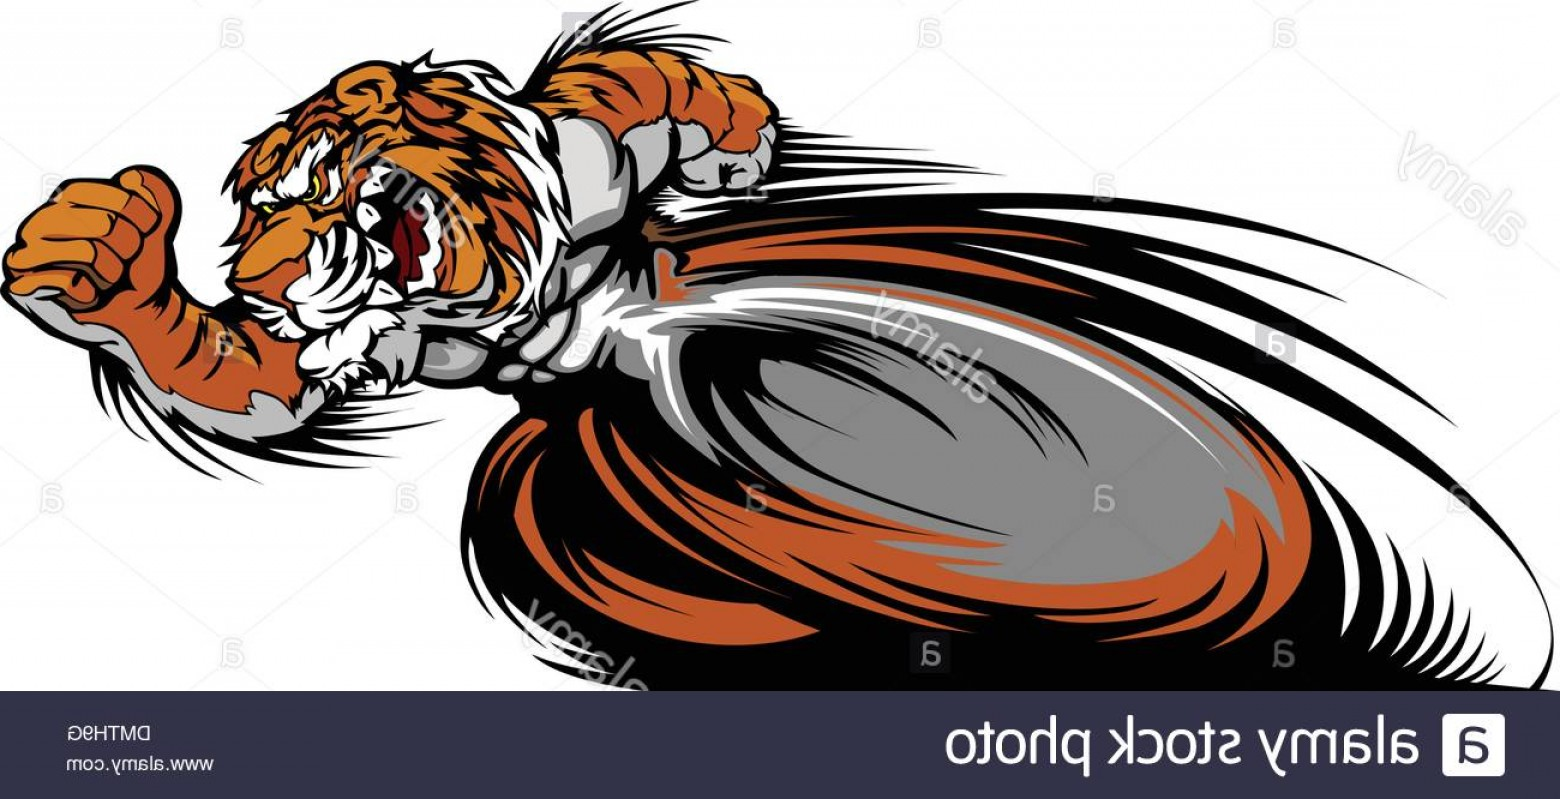 1560x799 Stock Photo Racing Tiger Mascot Graphic Vector Image Geekchicpro